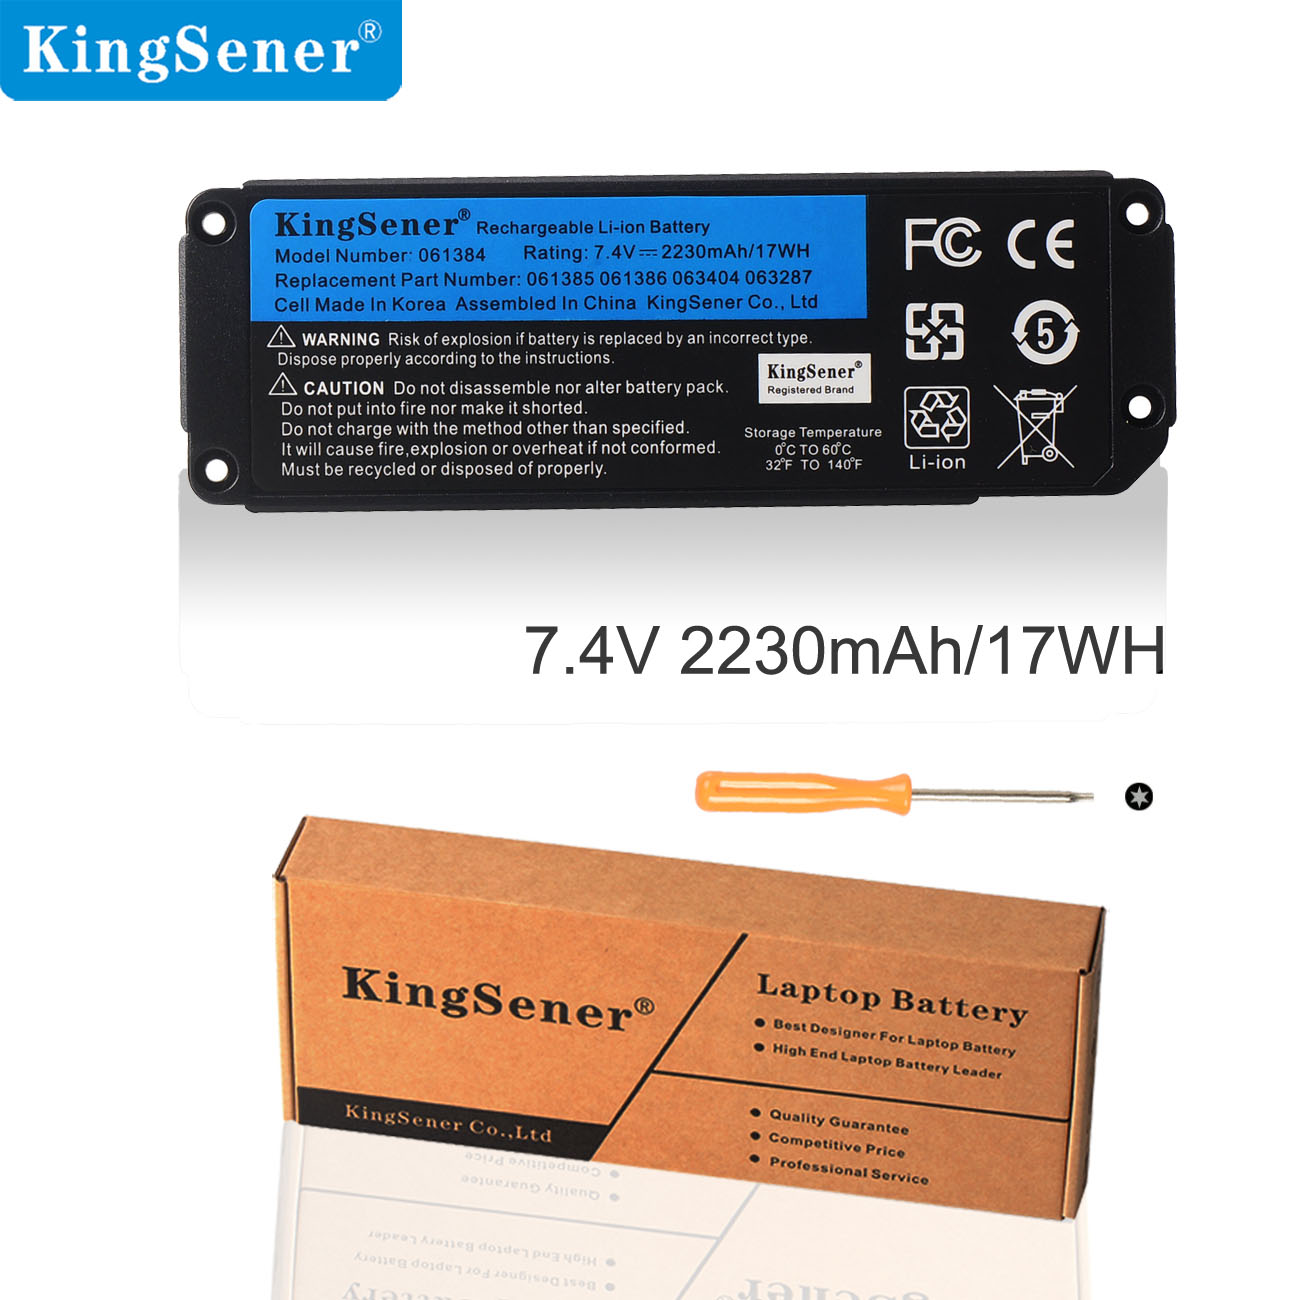 Kingsener 061384 061385 061386 063404 063287 Battery For BOSE SoundLink Mini I Bluetooth Speaker Rechargeable Battery 7.4V 17WH